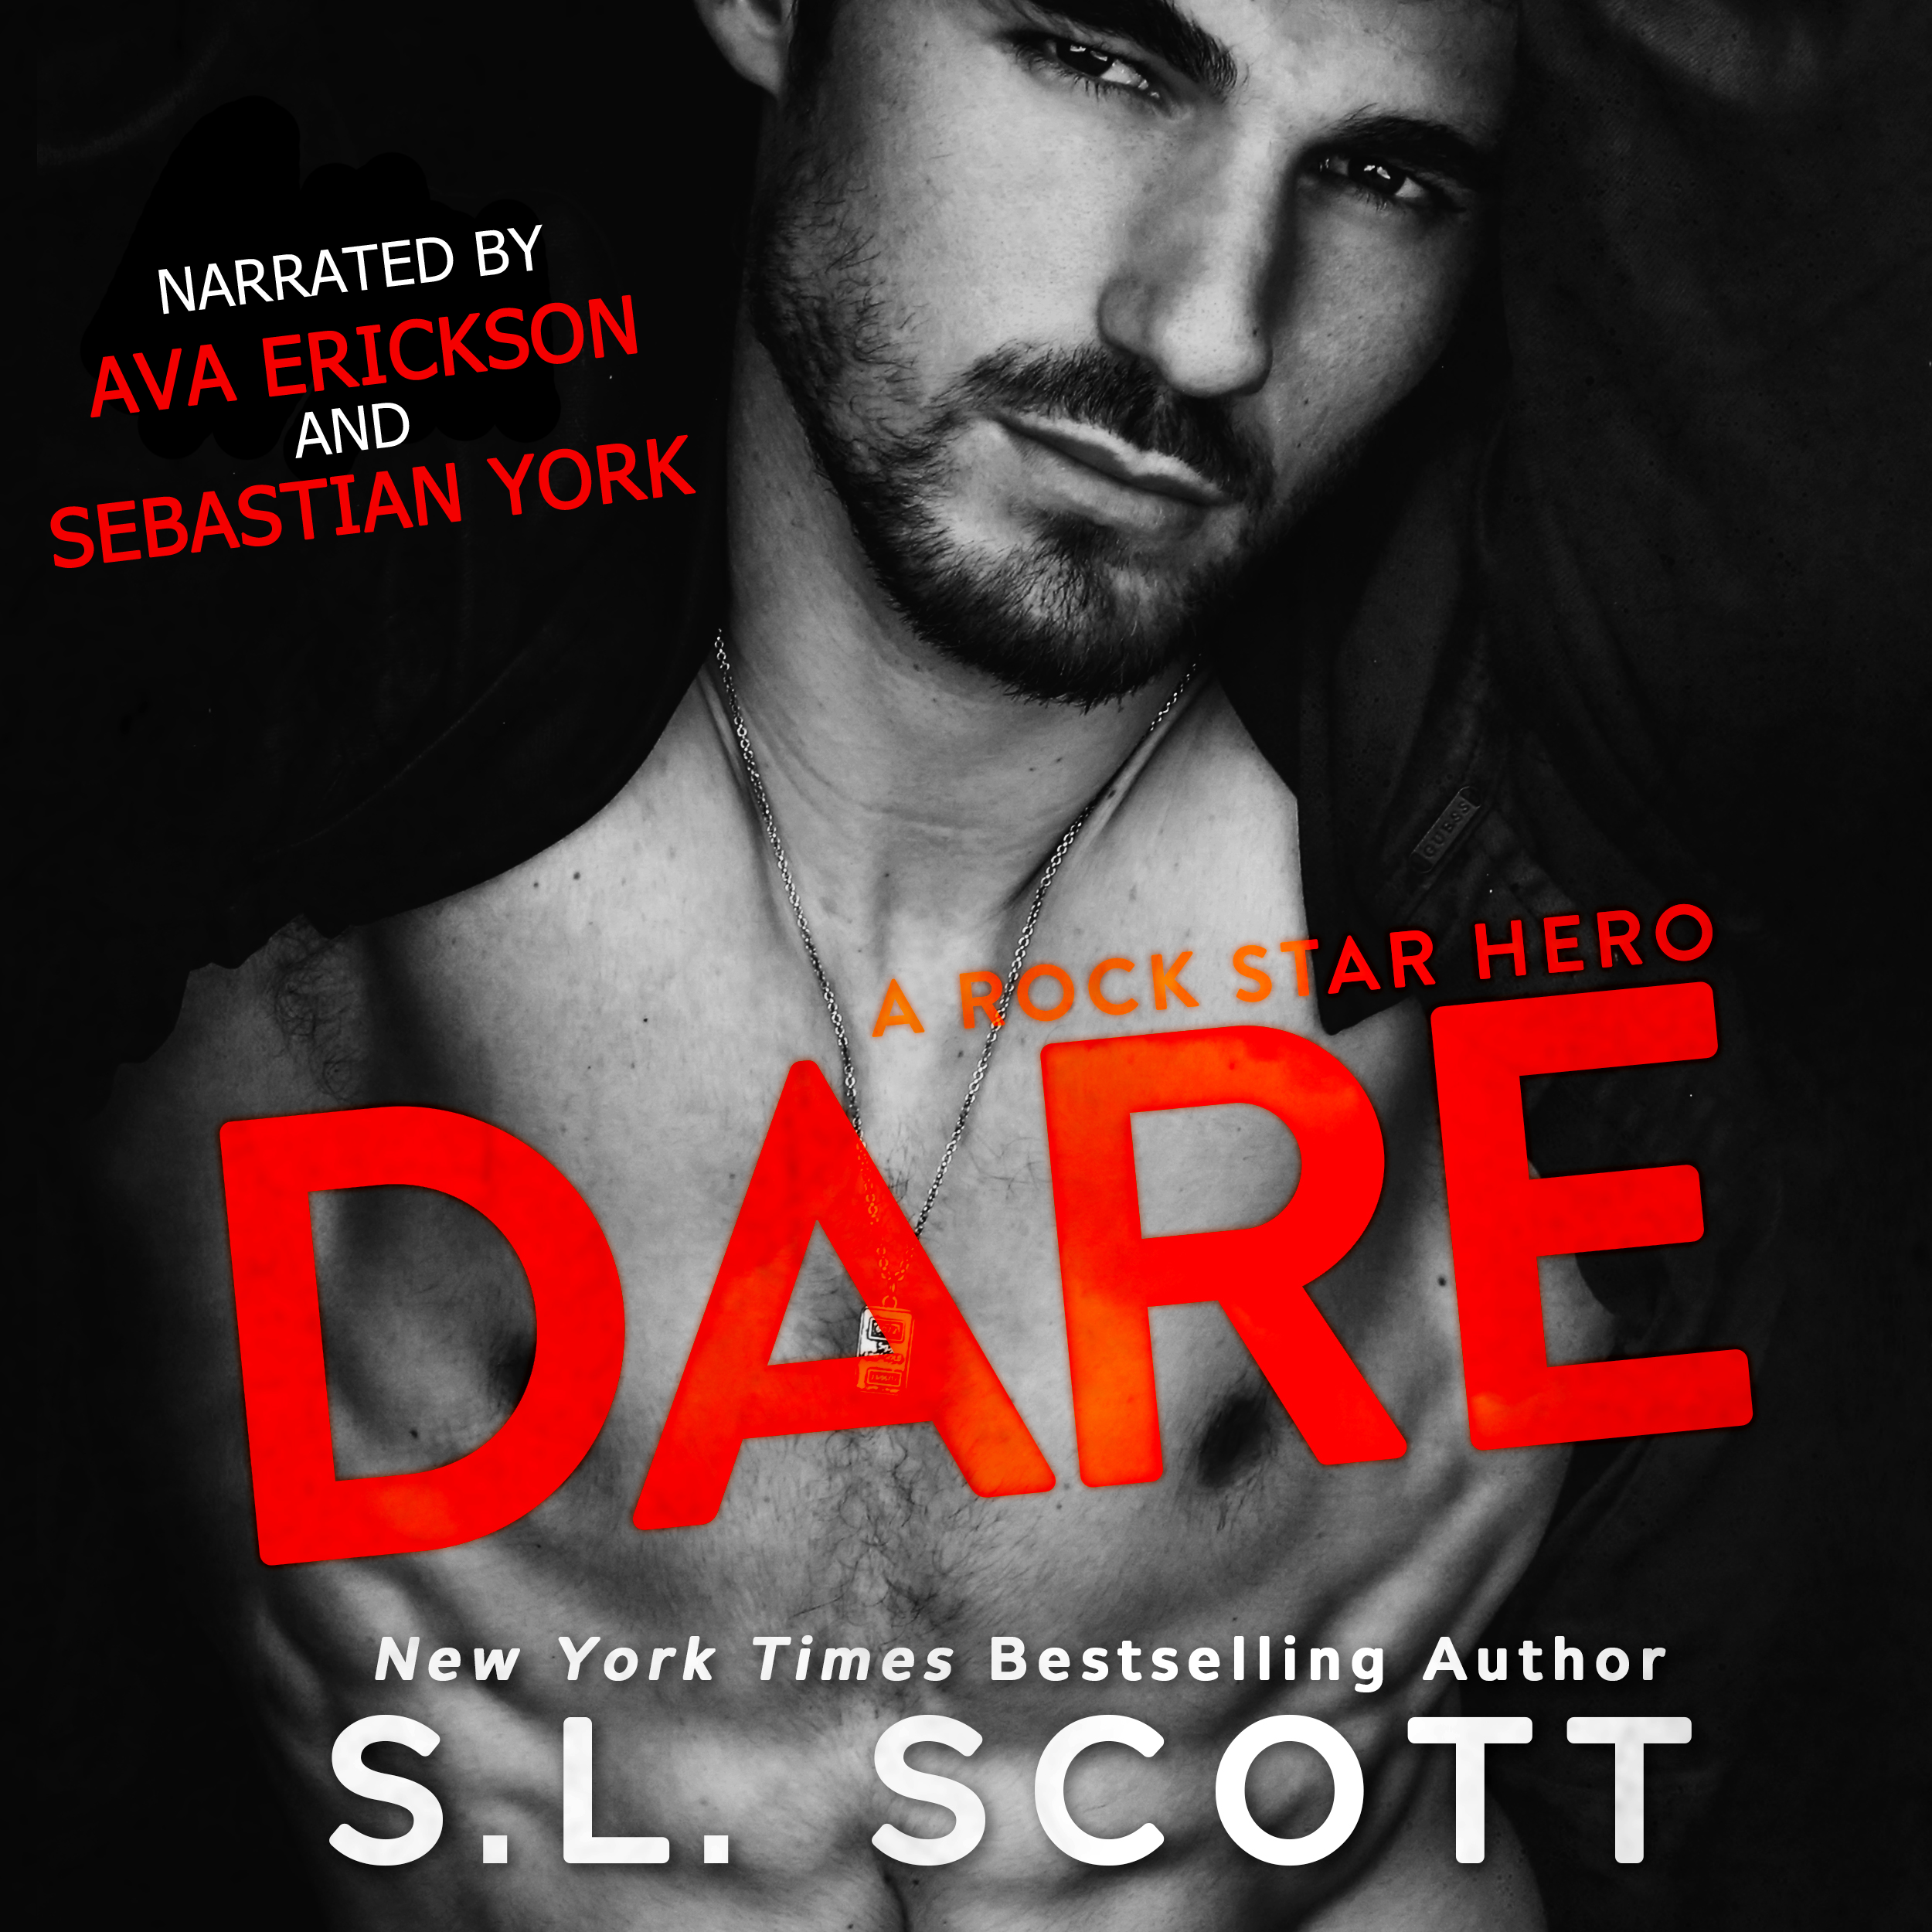 Dare Audio Cover 1.png